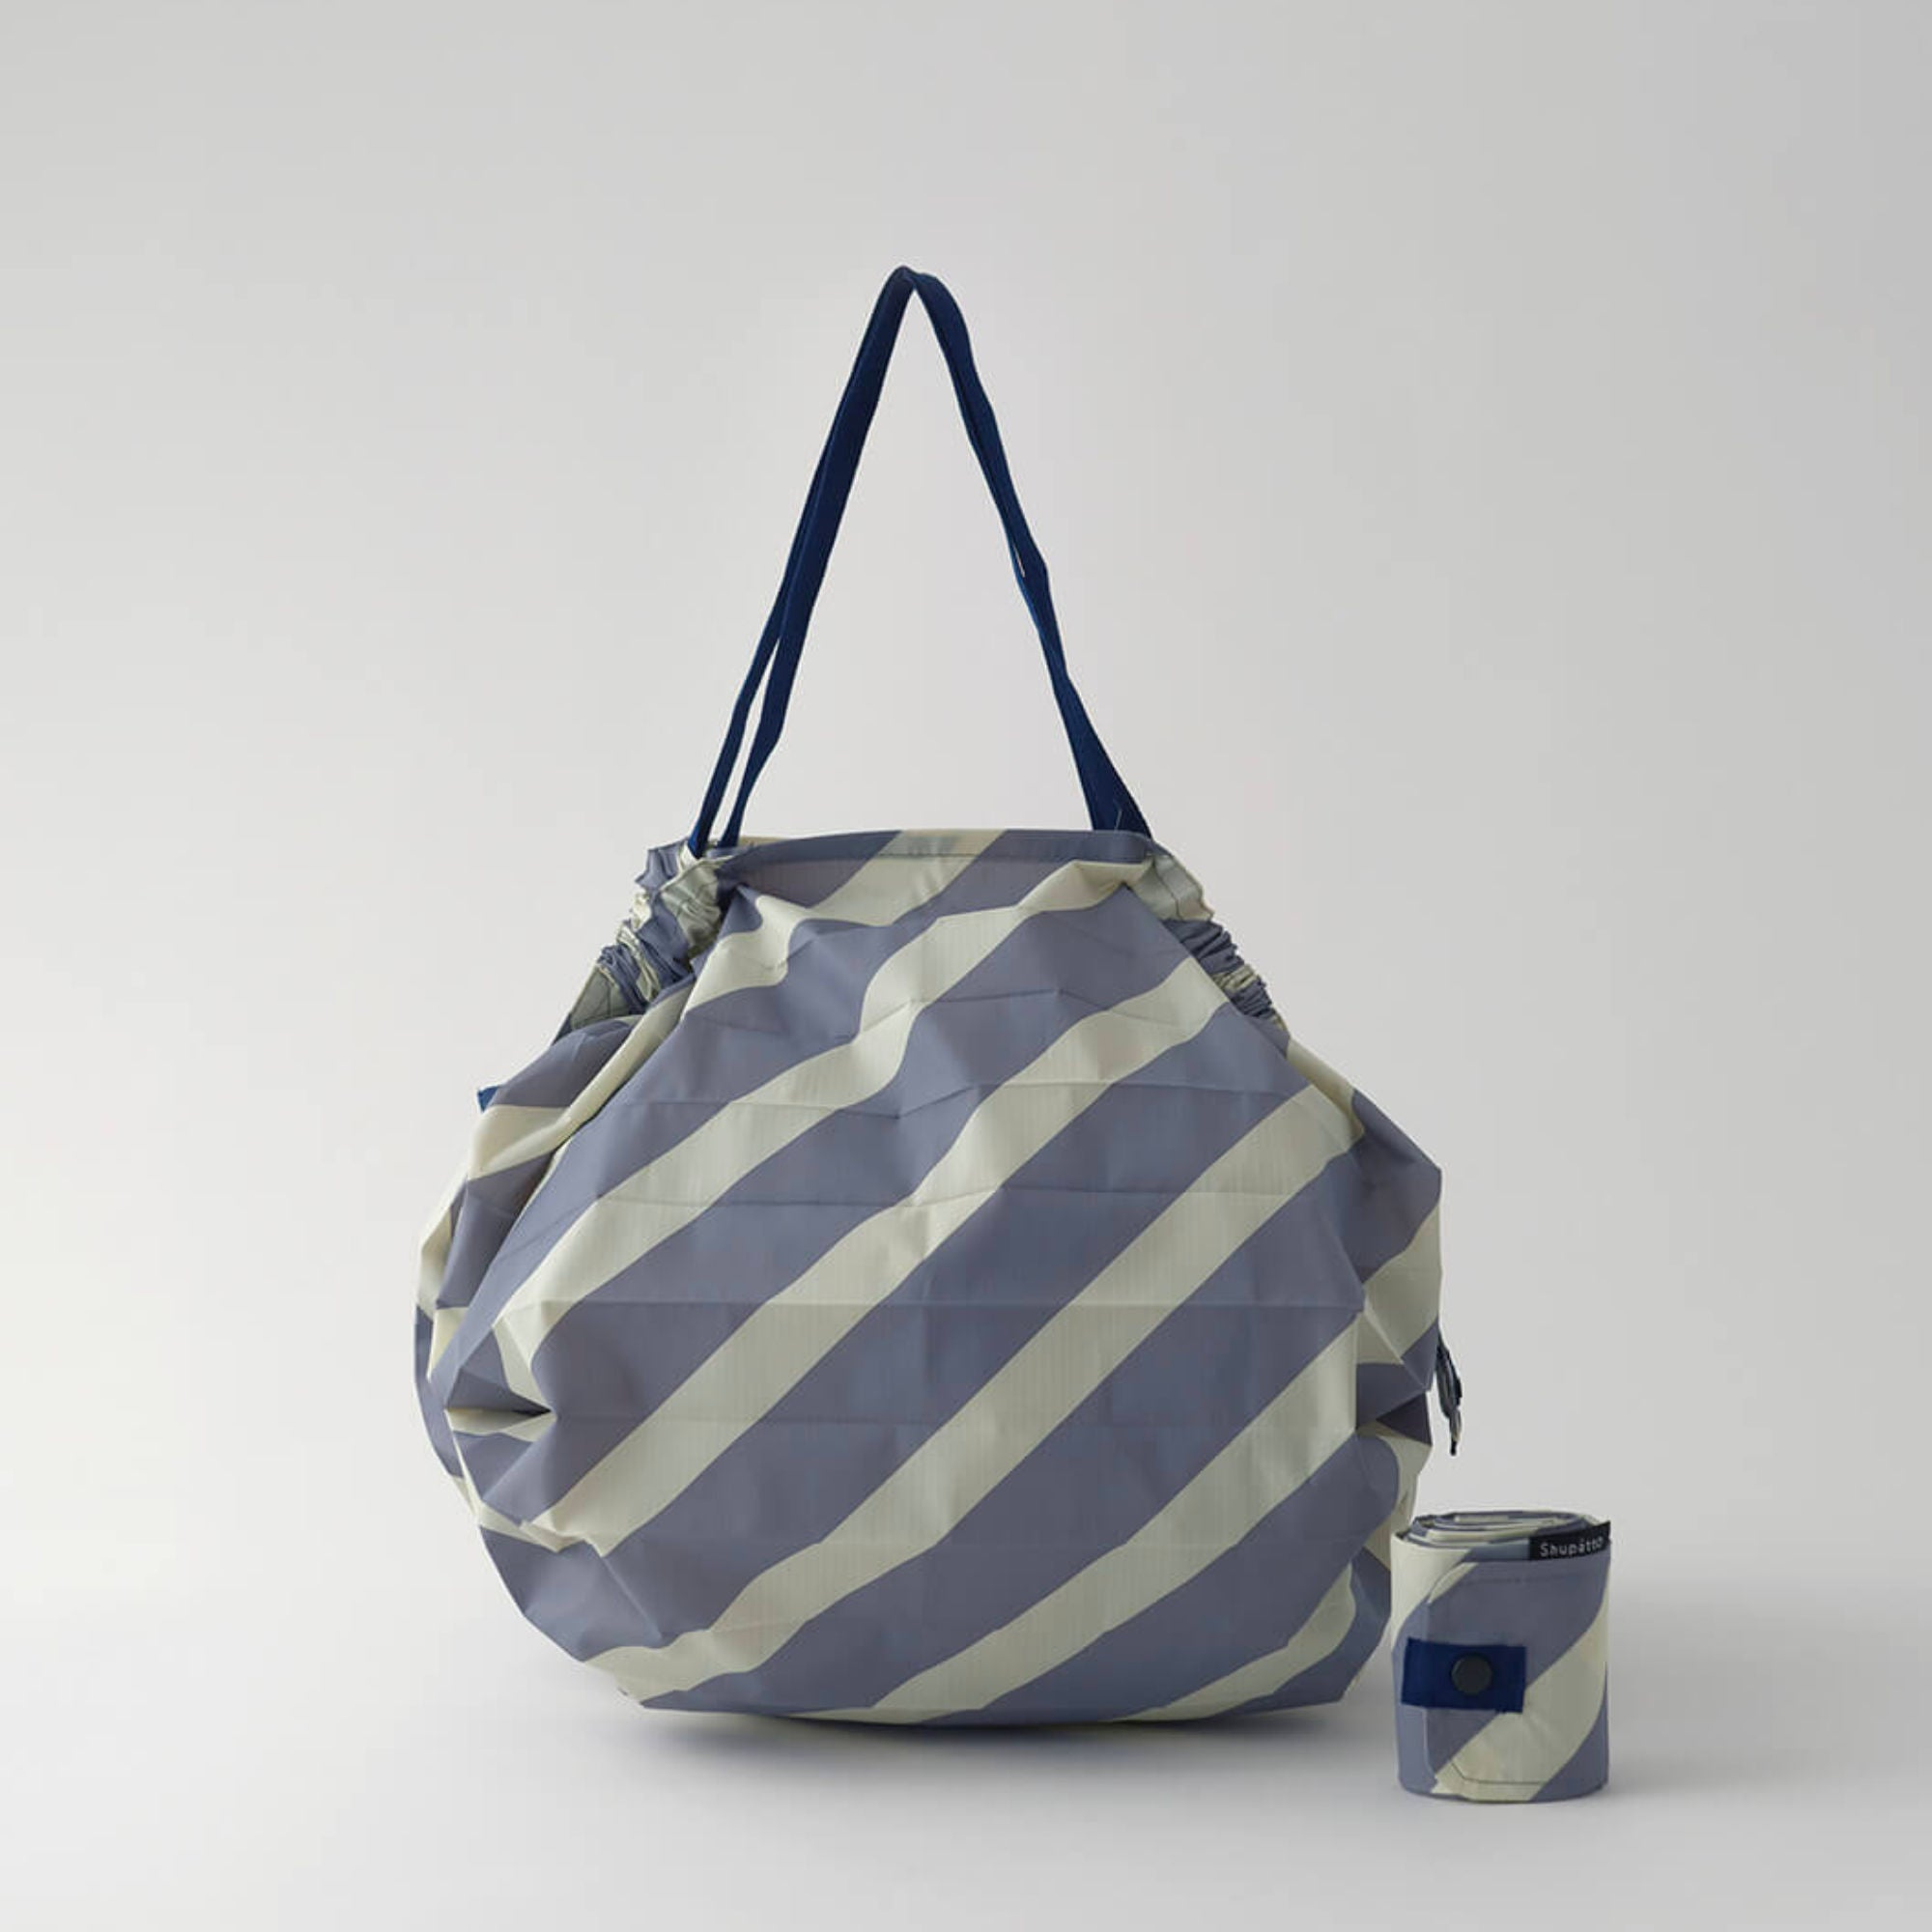 Marna Shupatto Compact Bag M , Diagonal Stripe